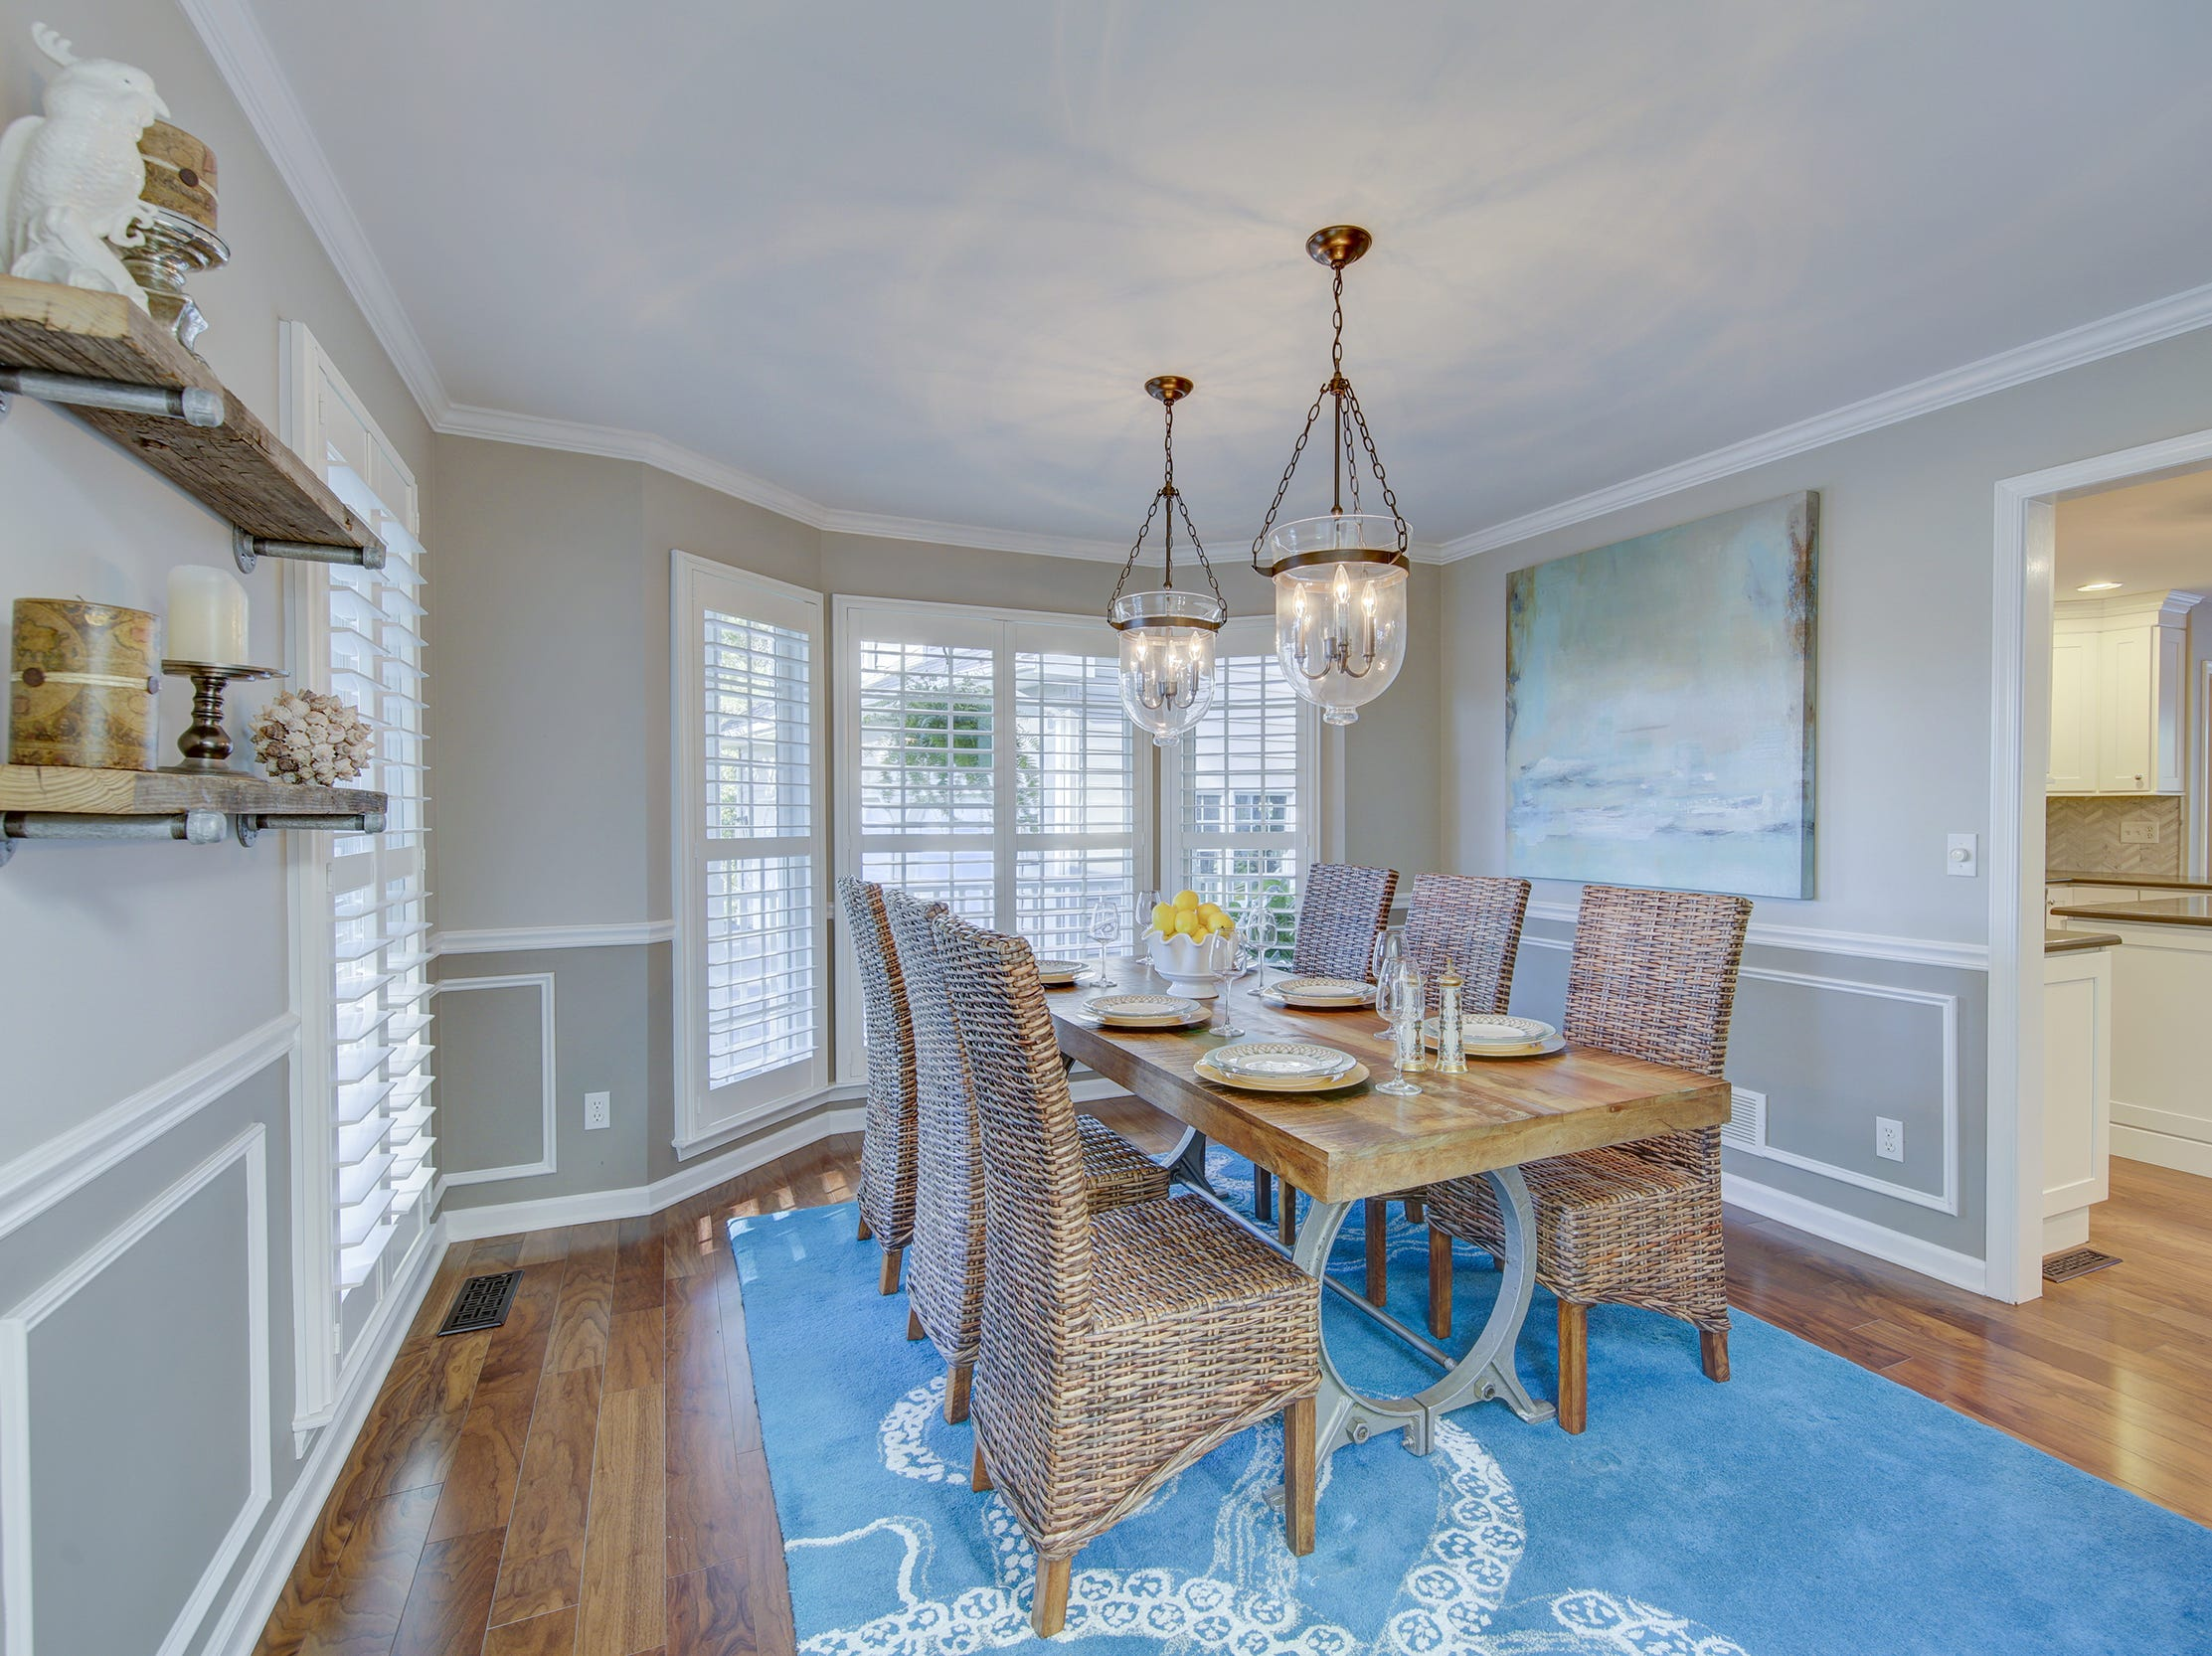 The formal dining room at 204 Lakeview Shores features decorative moldings.